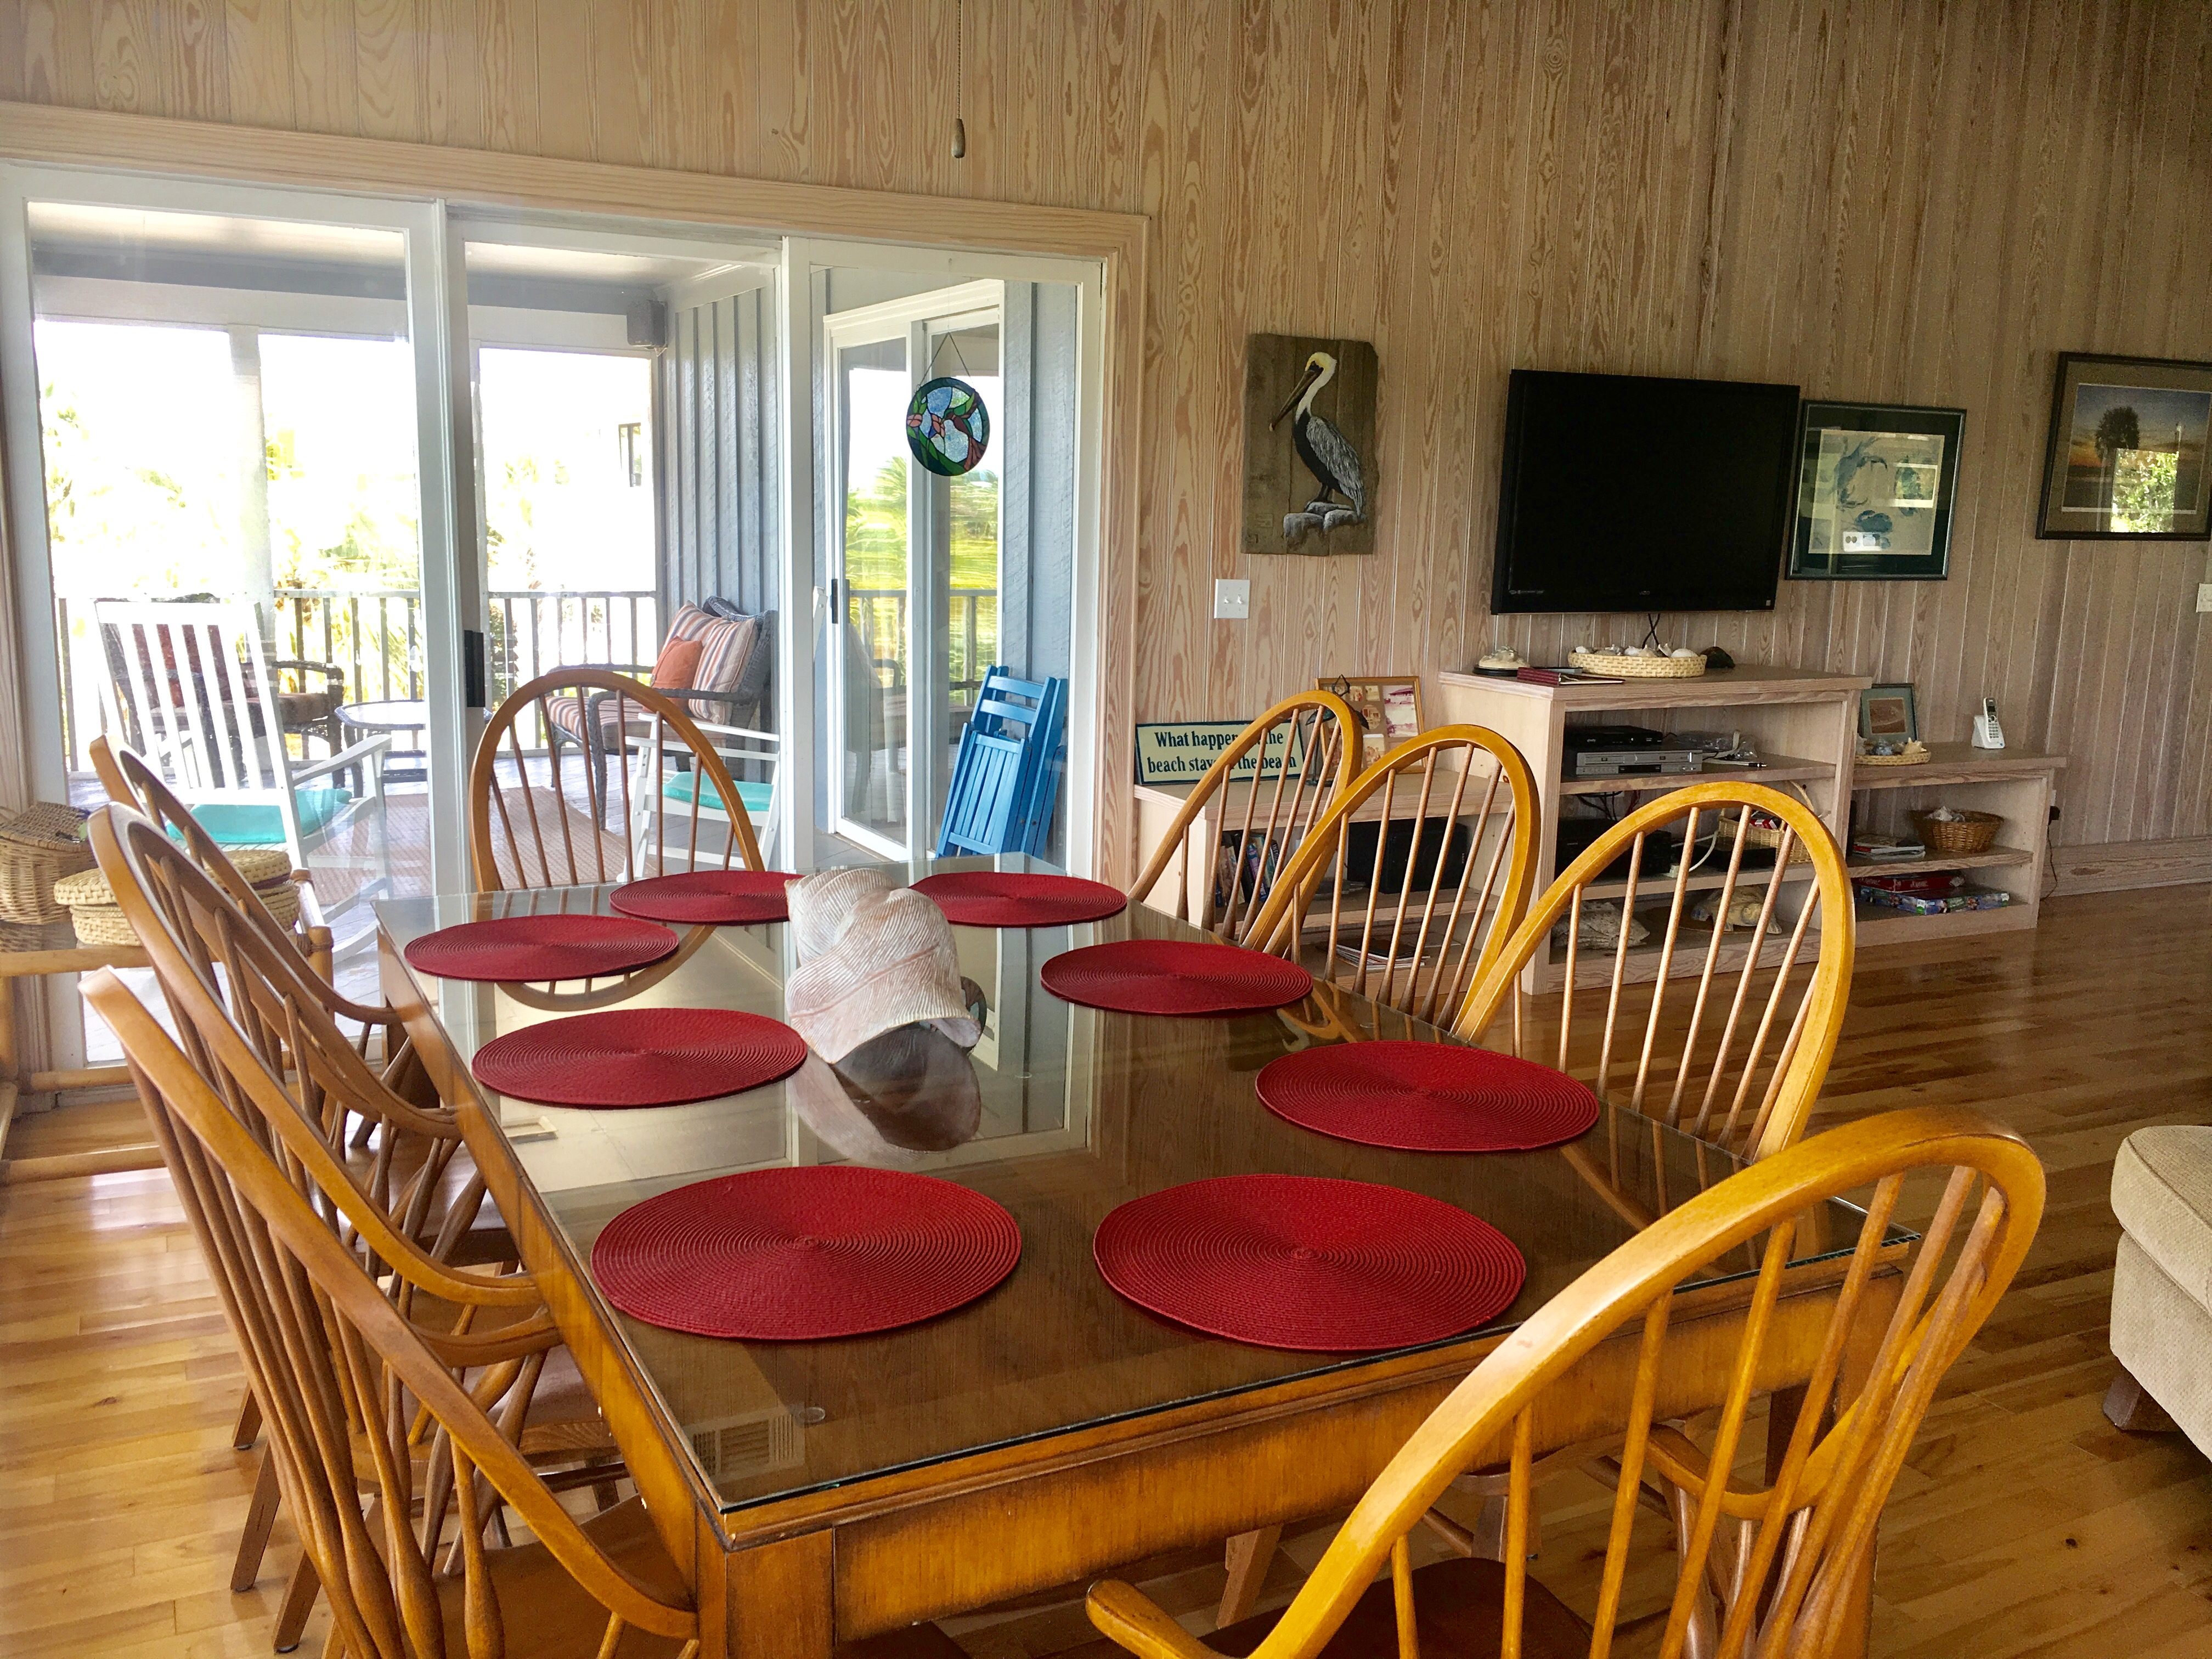 The dining area has a large table that seats 8 and has magnificent ocean views.